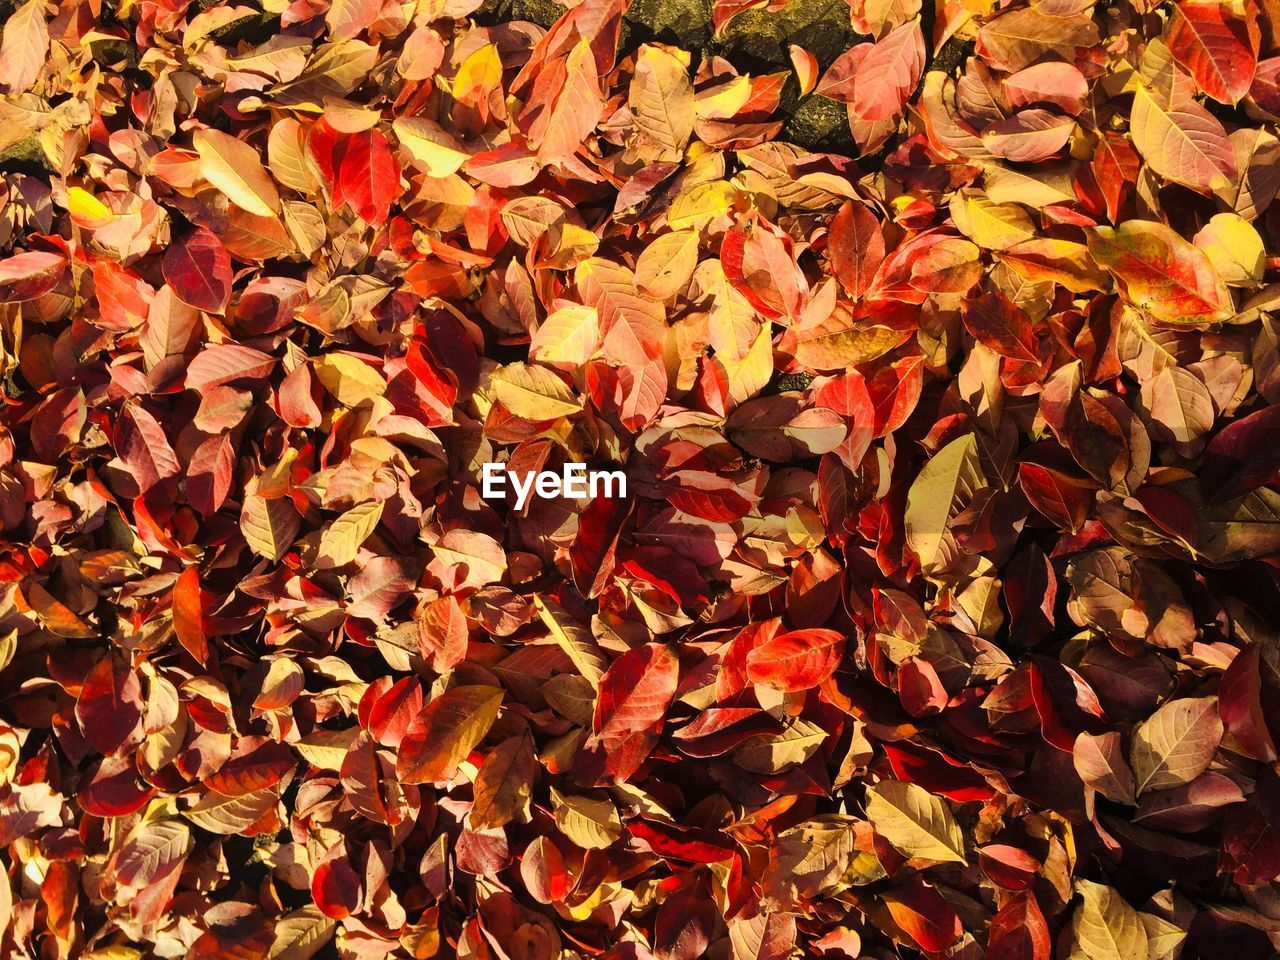 autumn, leaf, change, leaves, maple leaf, backgrounds, nature, full frame, dry, beauty in nature, maple, abundance, outdoors, no people, day, maple tree, red, fragility, close-up